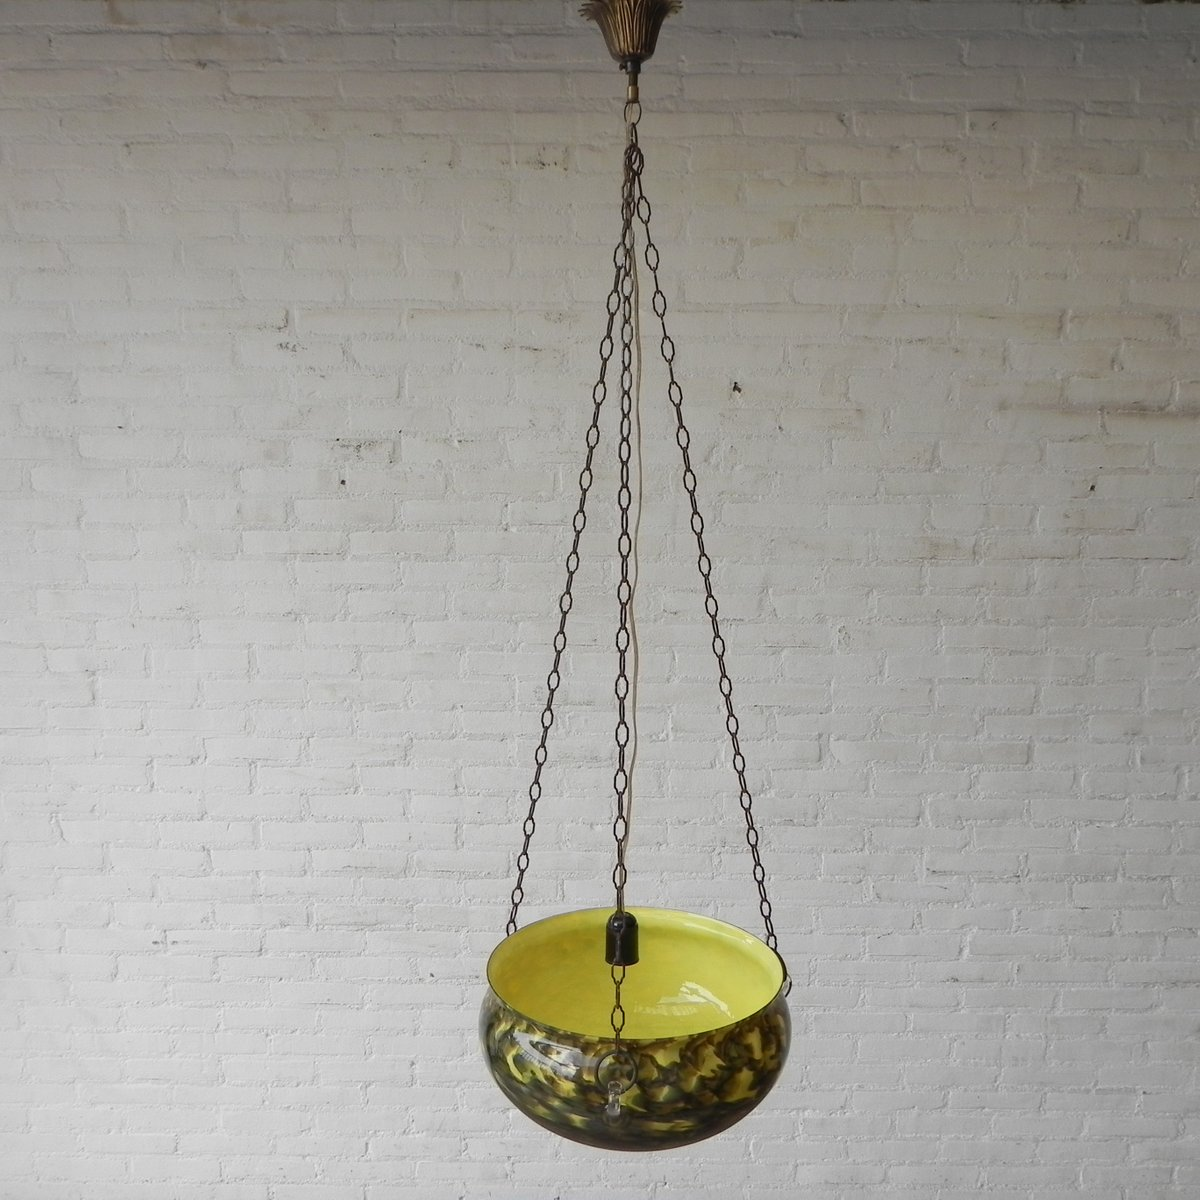 Vintage Hanging Lamp With Large Glass Bowl 1950s For Sale